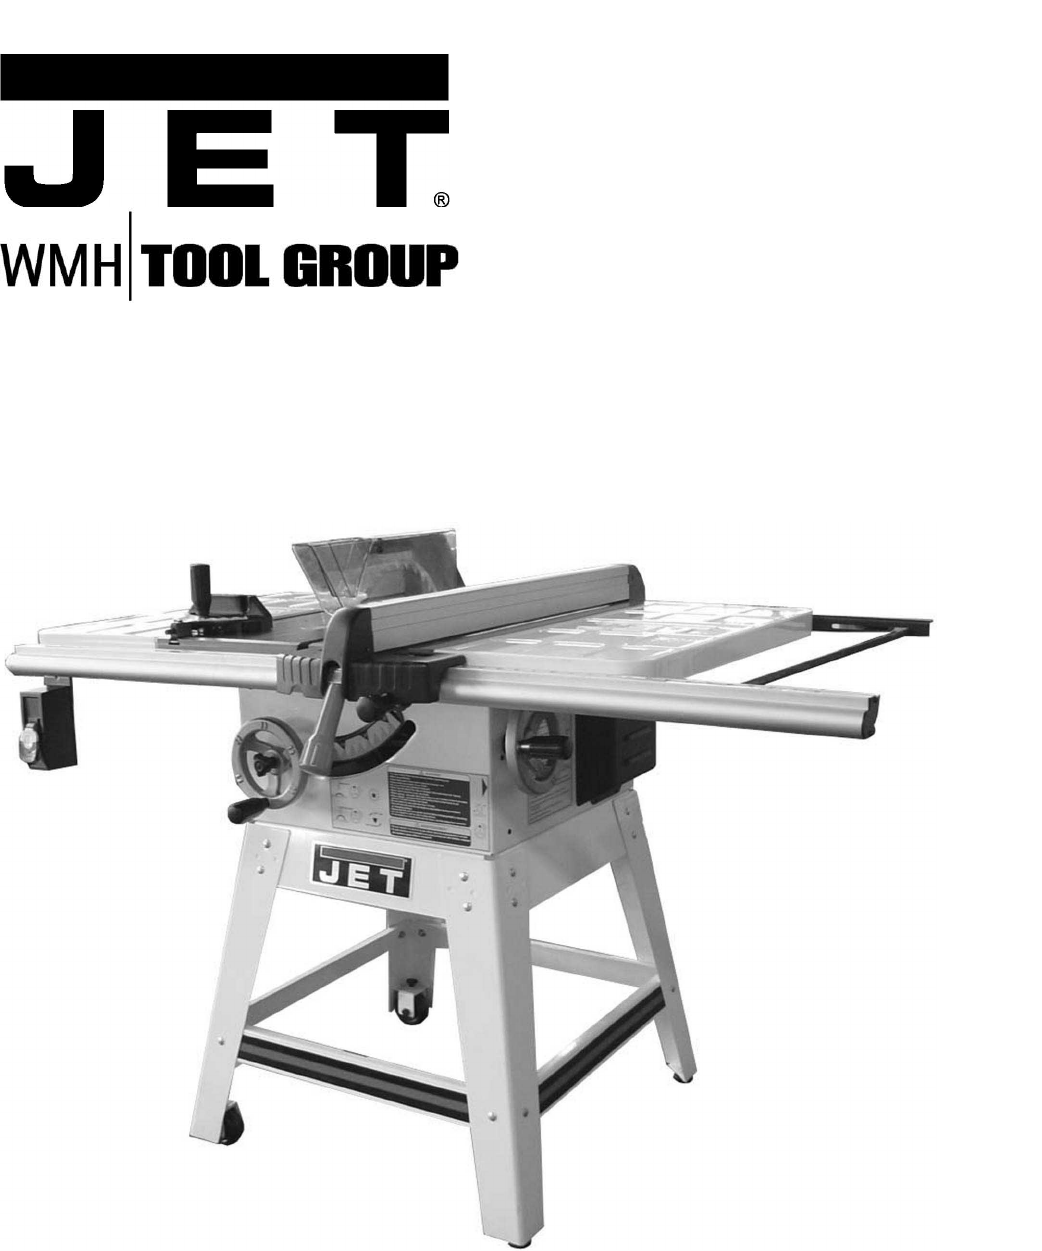 Jet tools saw jwts 10 user guide manualsonline keyboard keysfo Choice Image